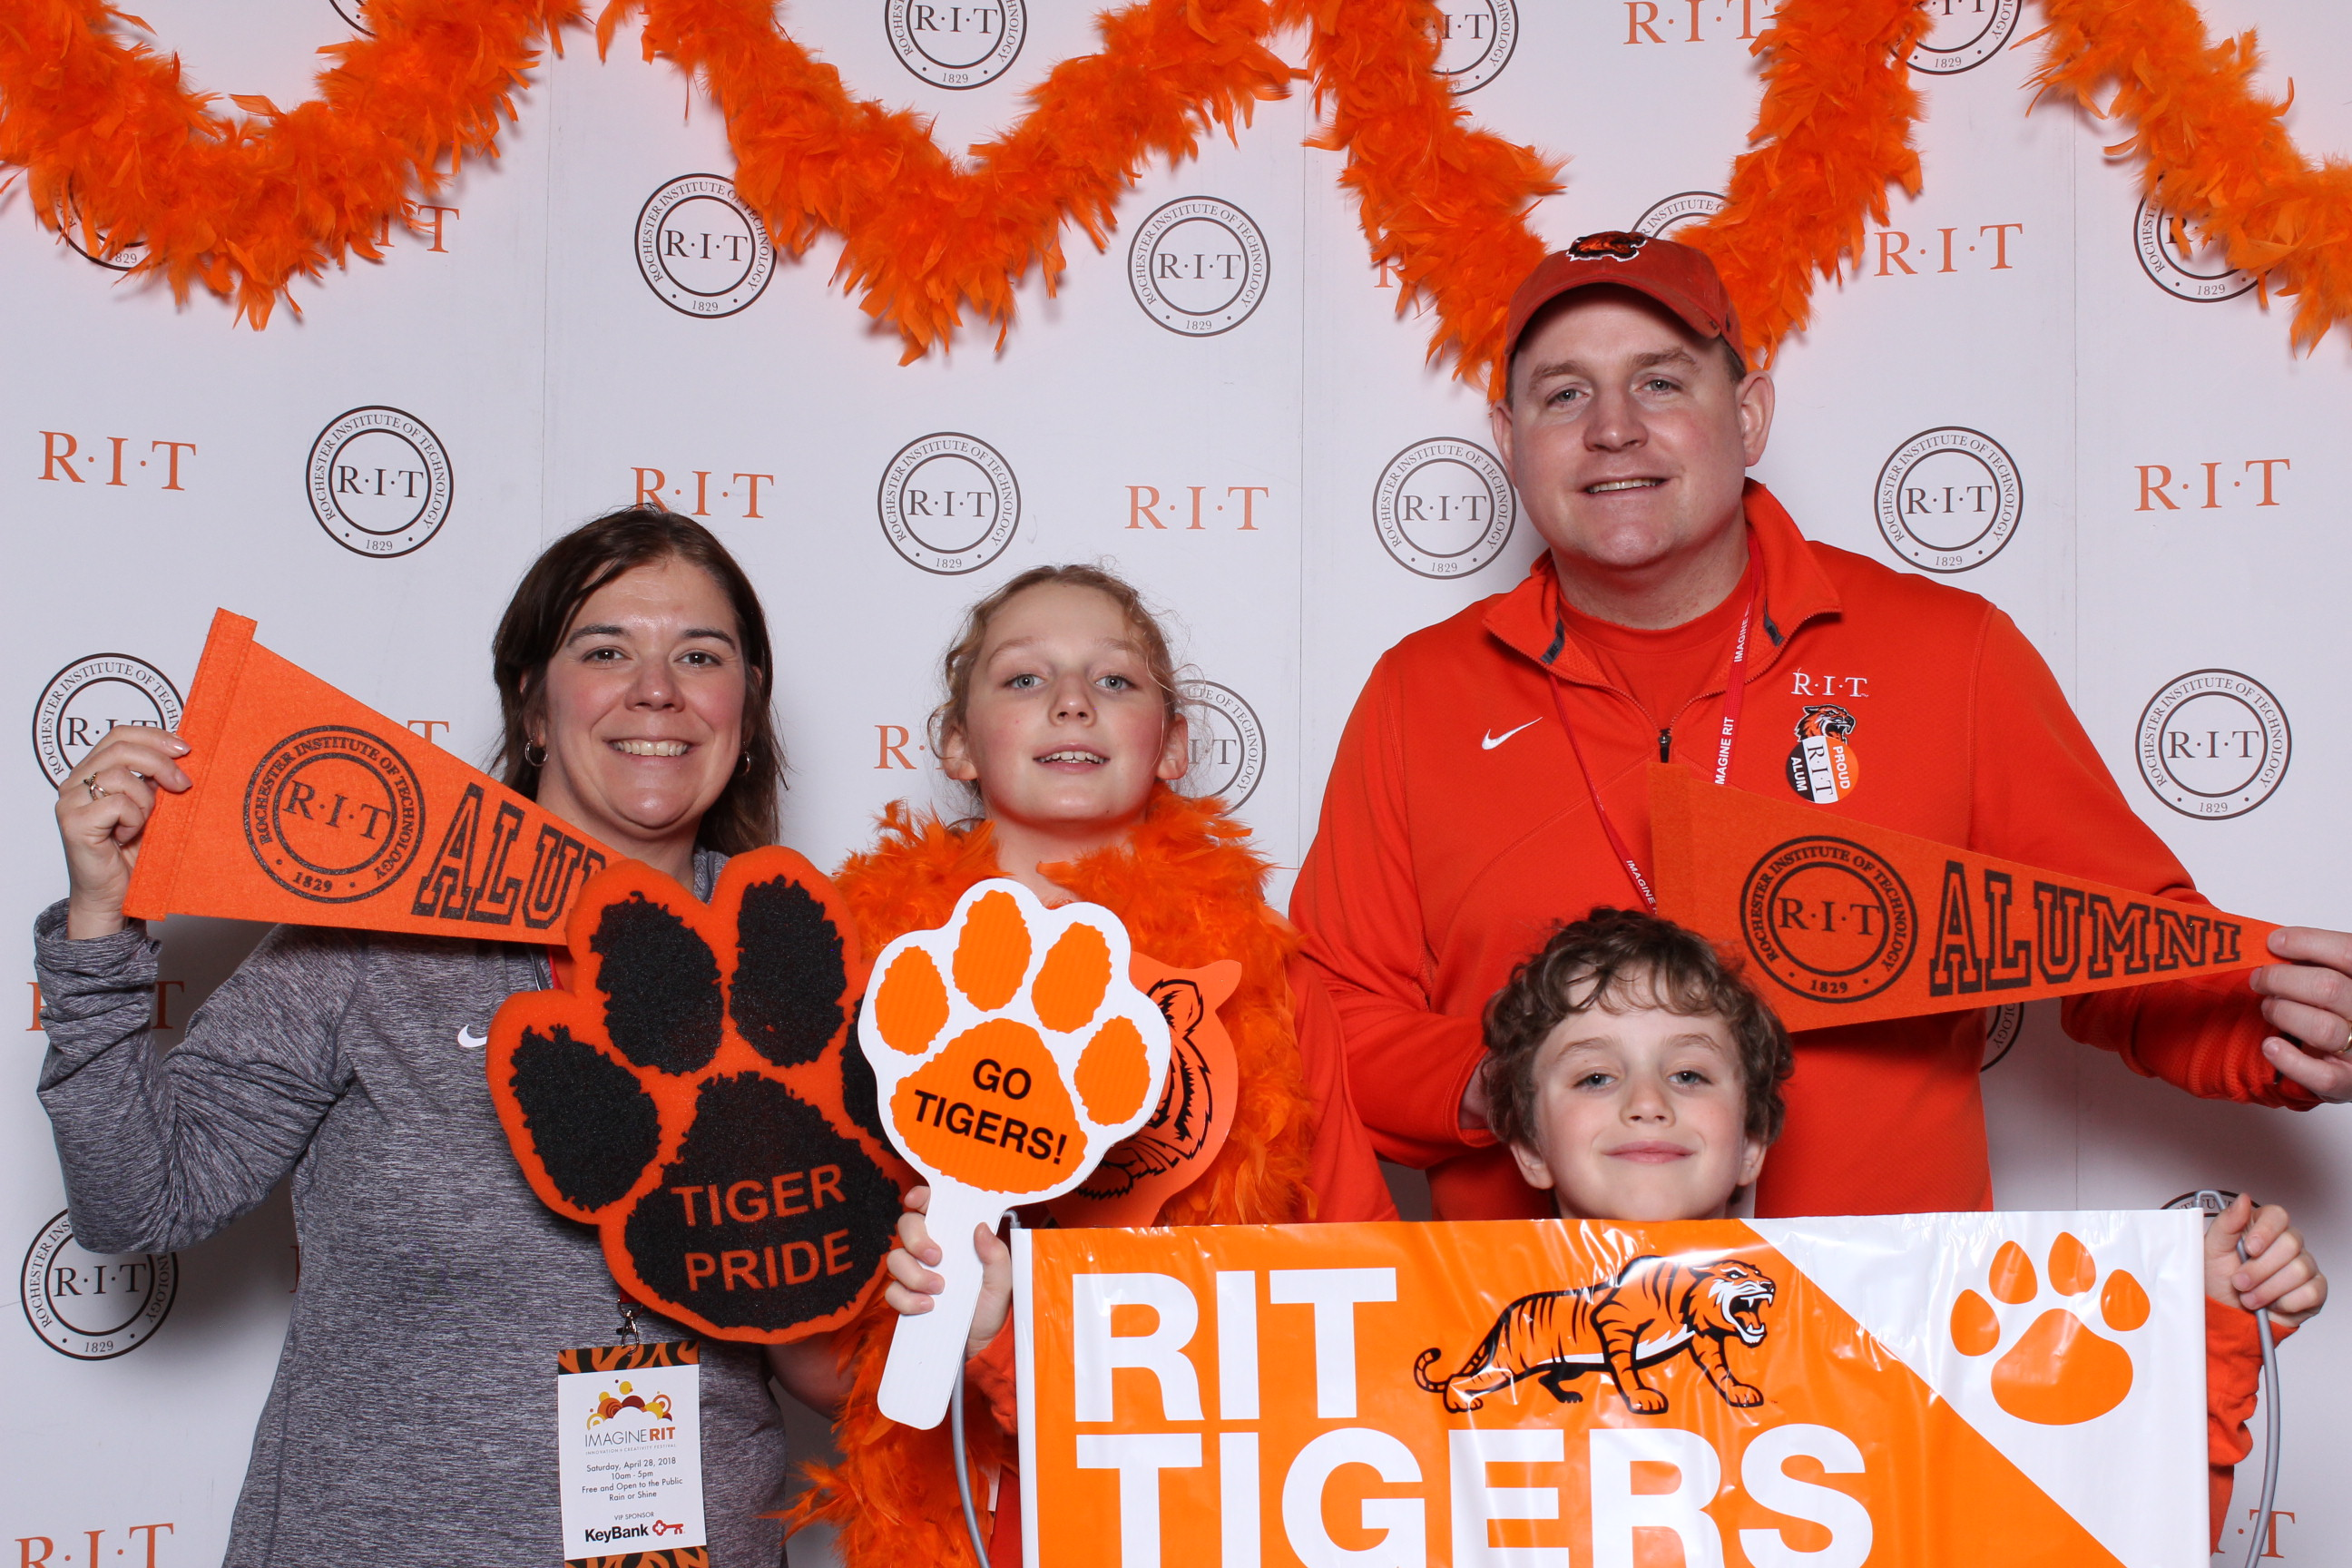 family holding different RIT items (banner, tiger paw, pennant flag)